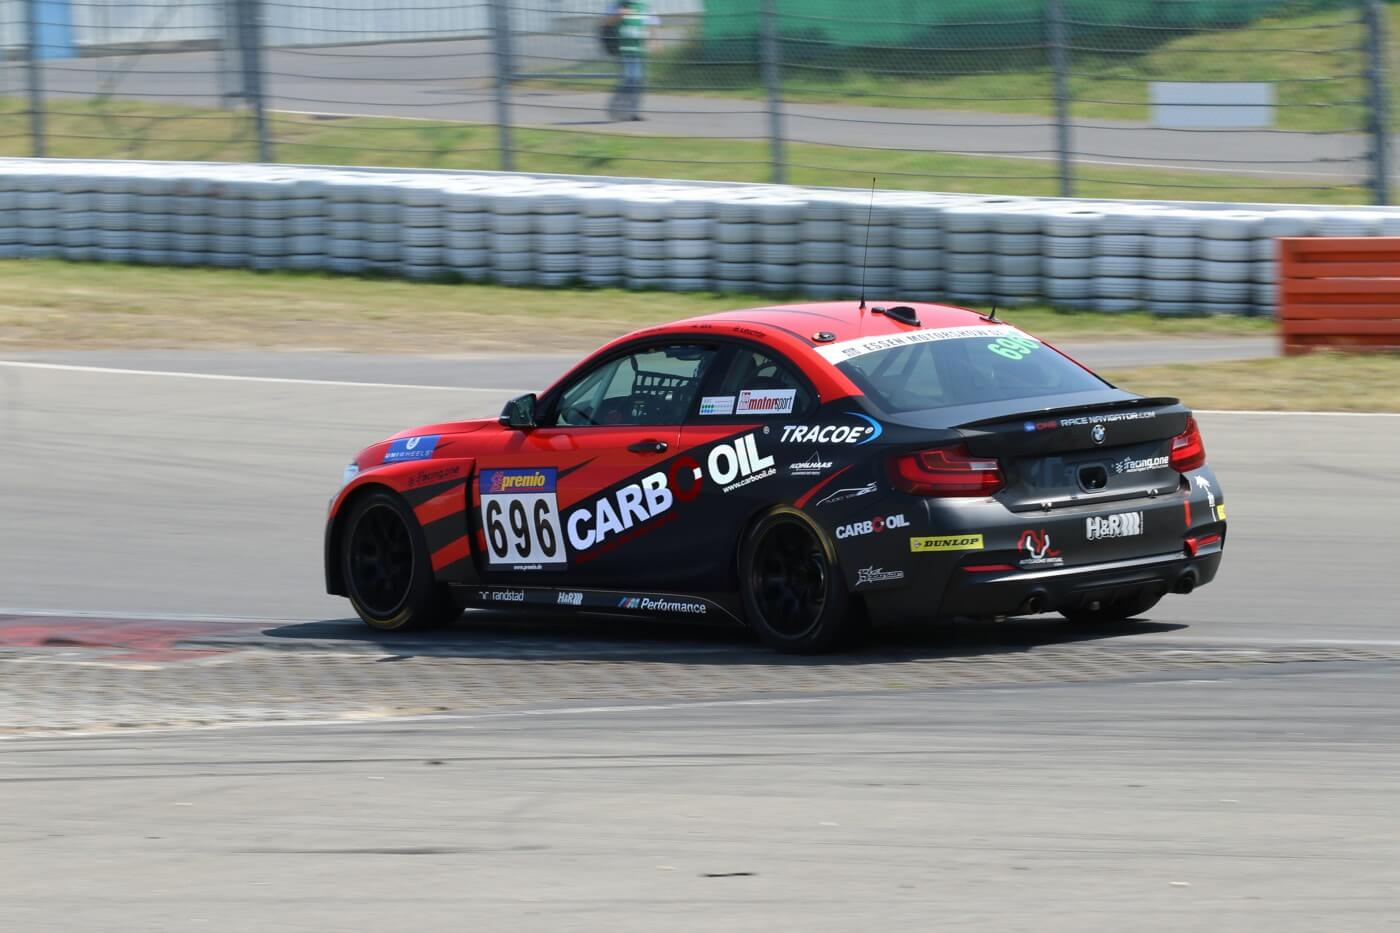 Carbo oil BMW VLN 3